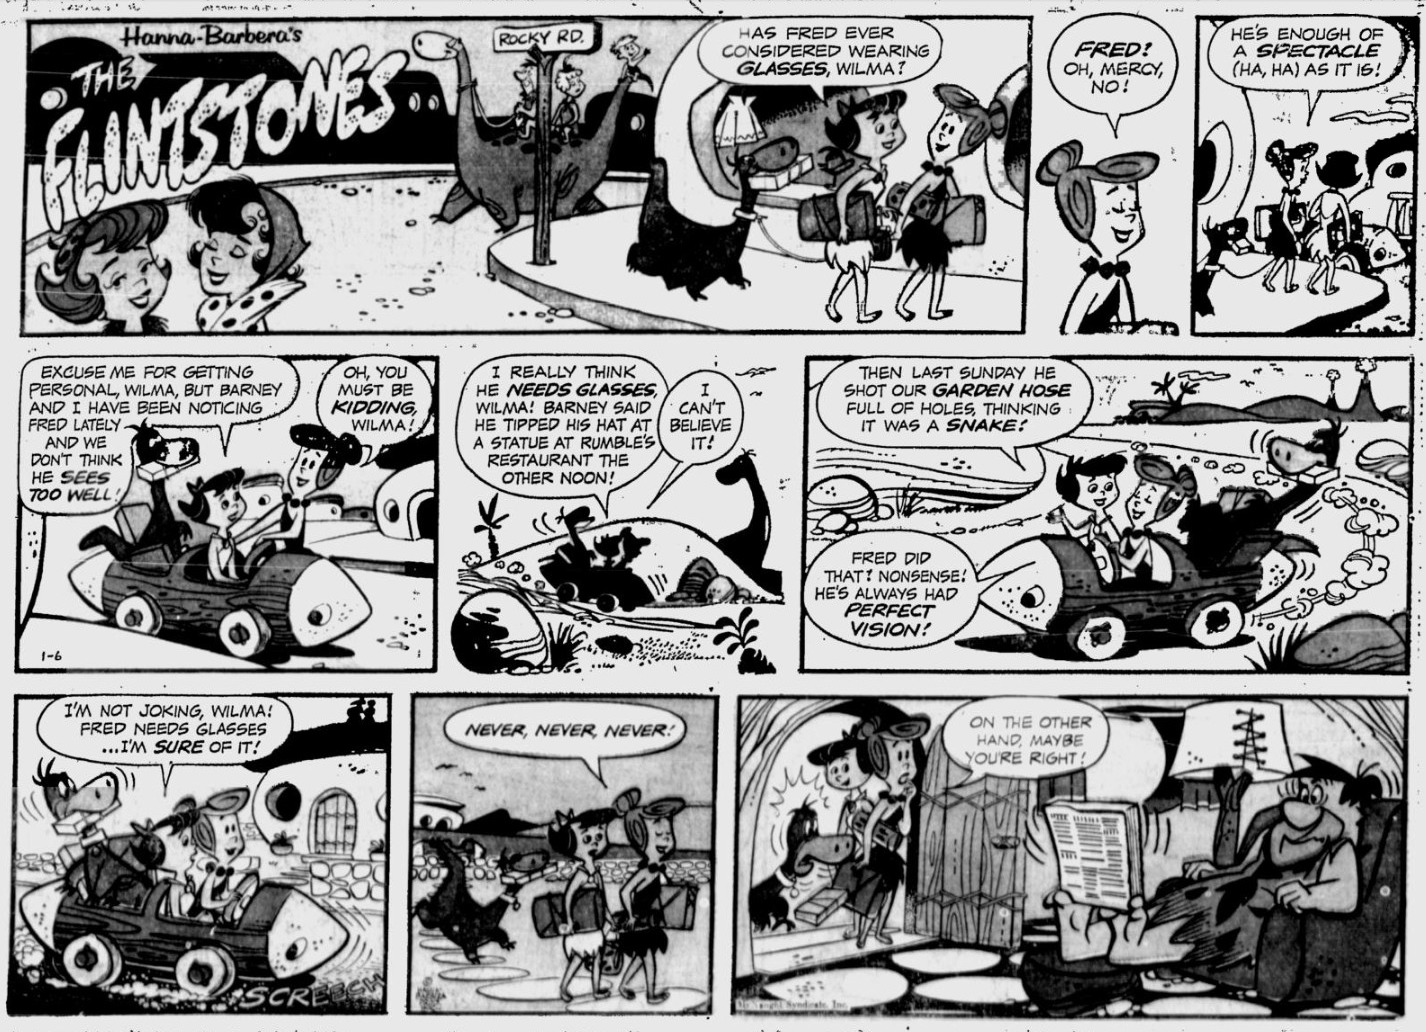 how my brother leon brought home a wife in comics This comics strip is based on the story how my brother leon brought home a wife how my brother leon brought home a wife is the story of a man introducing his city-born wife to his more provincial family told from the perspective of leon's younger brother baldo.